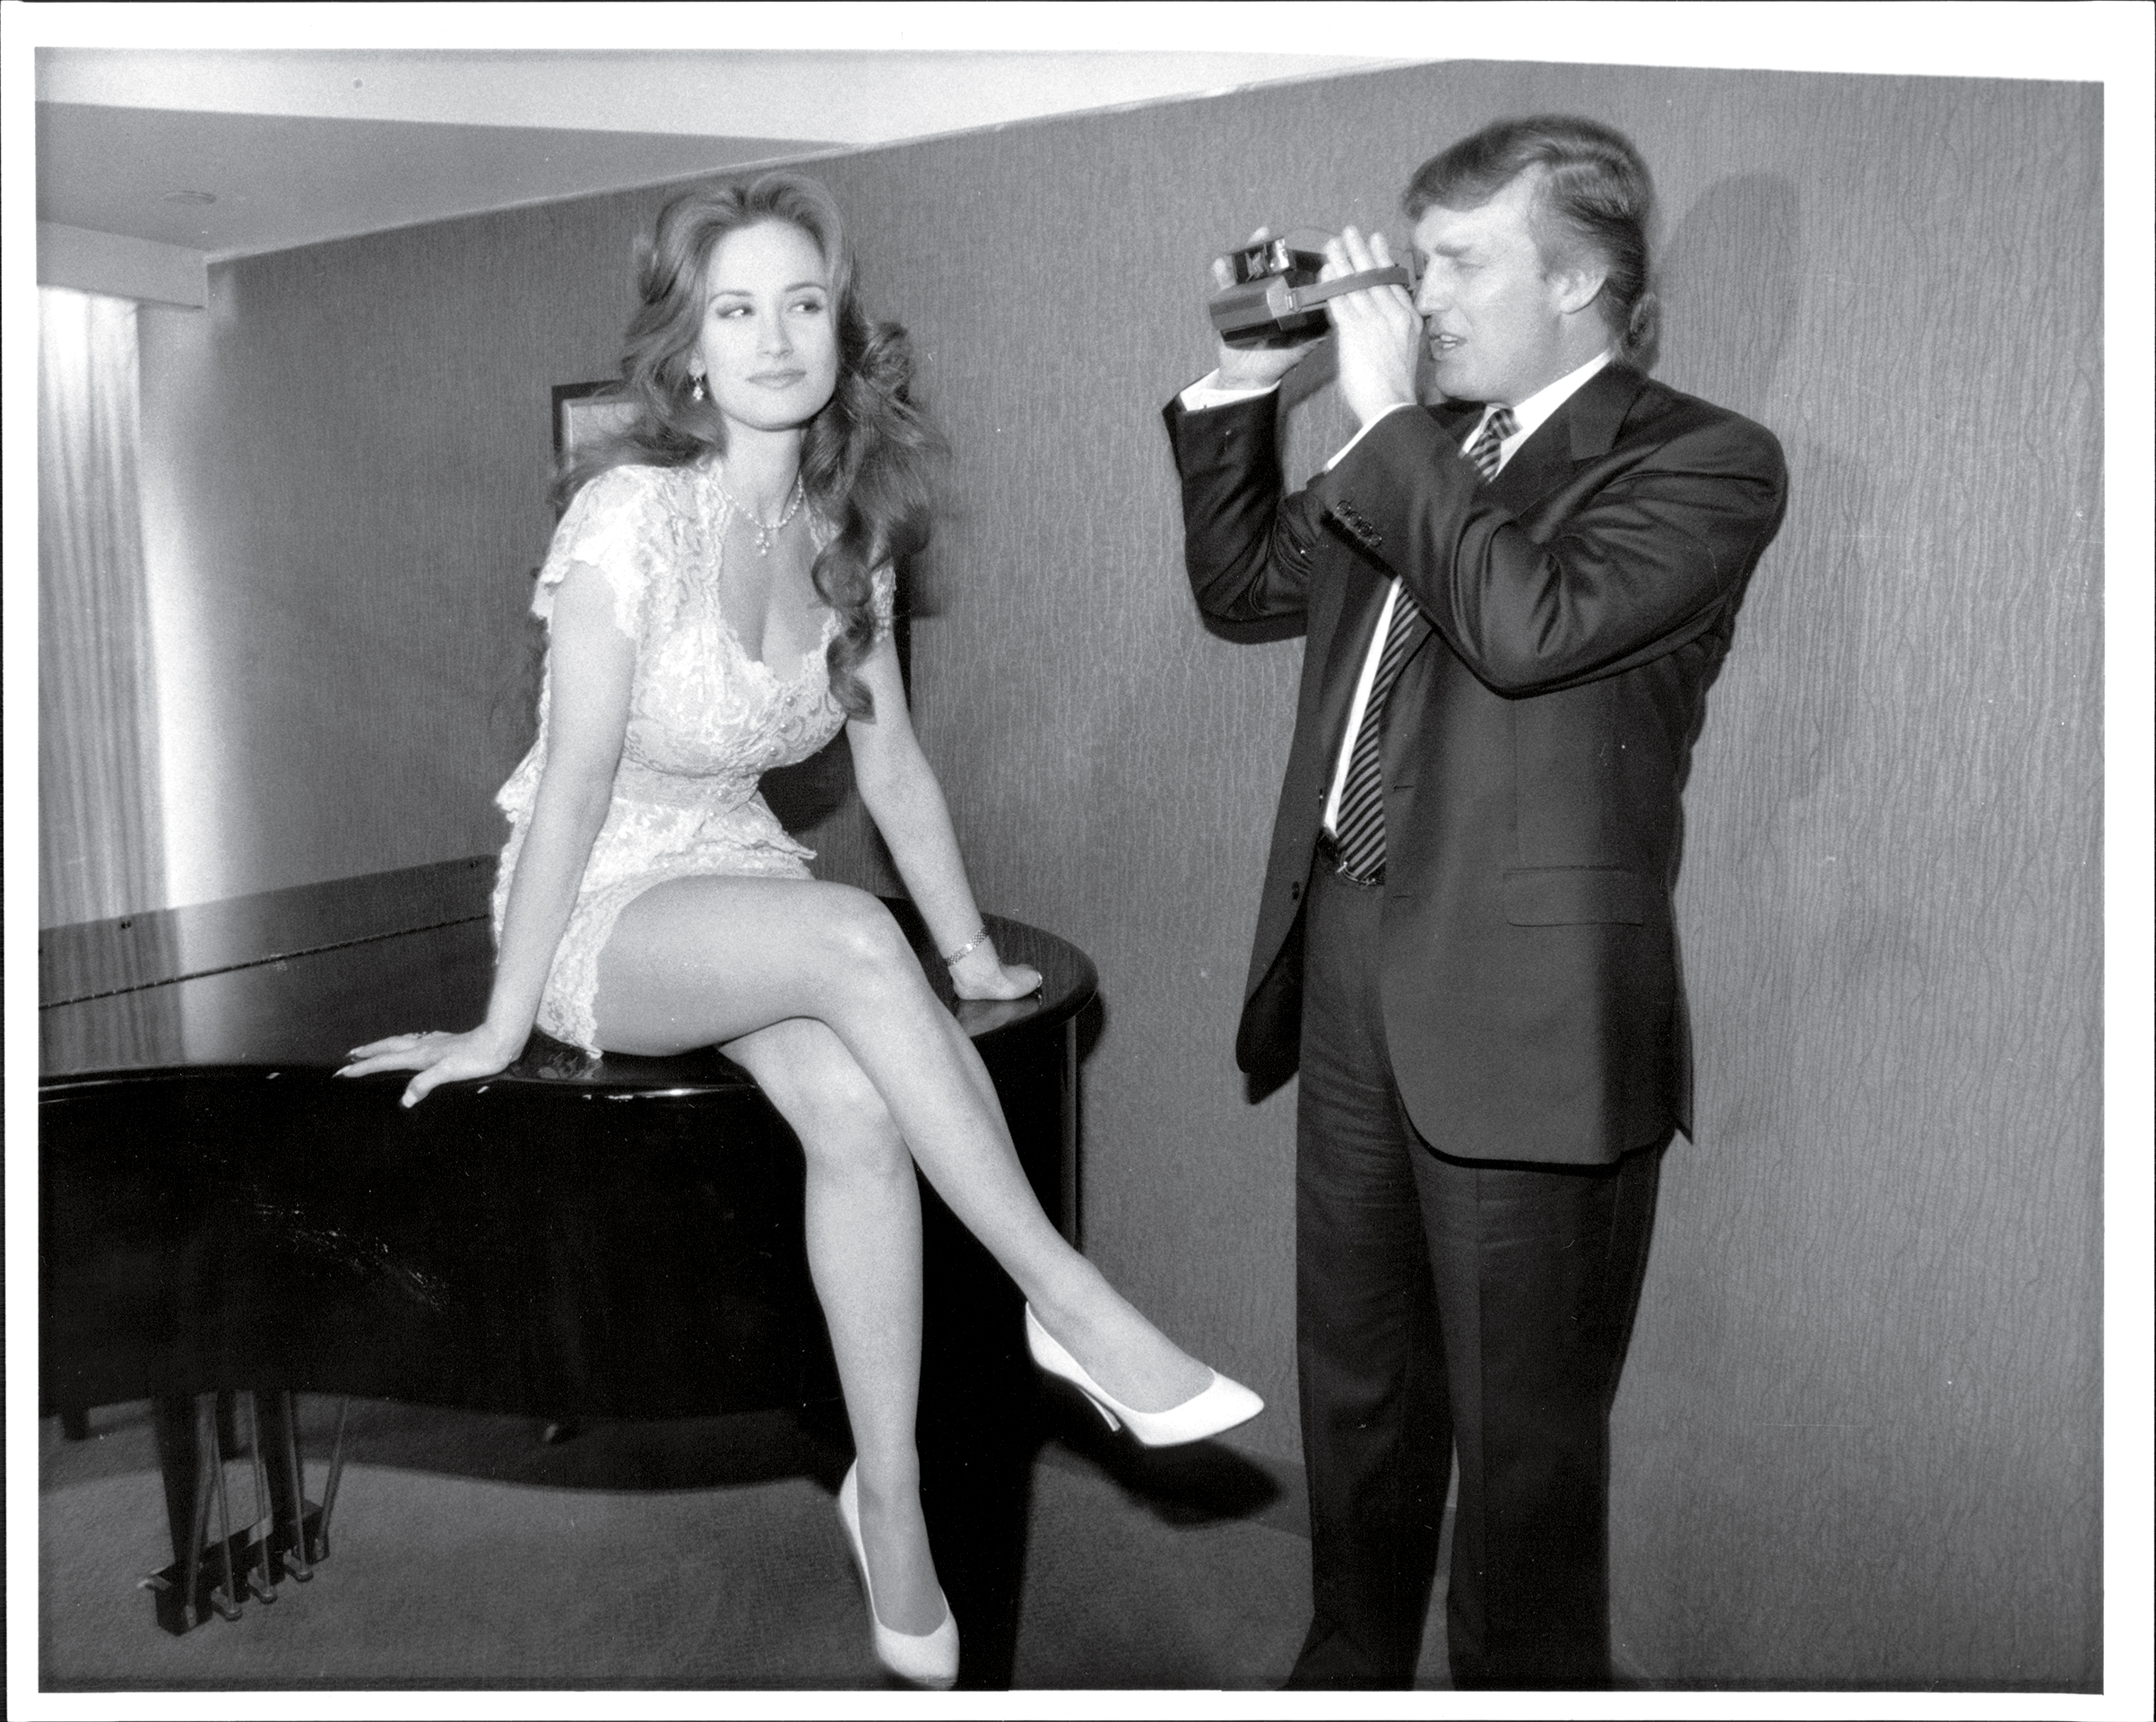 Trump photographs a Playmate candidate during Playboy's 40th Anniversary Playmate Search in New York City in 1993.